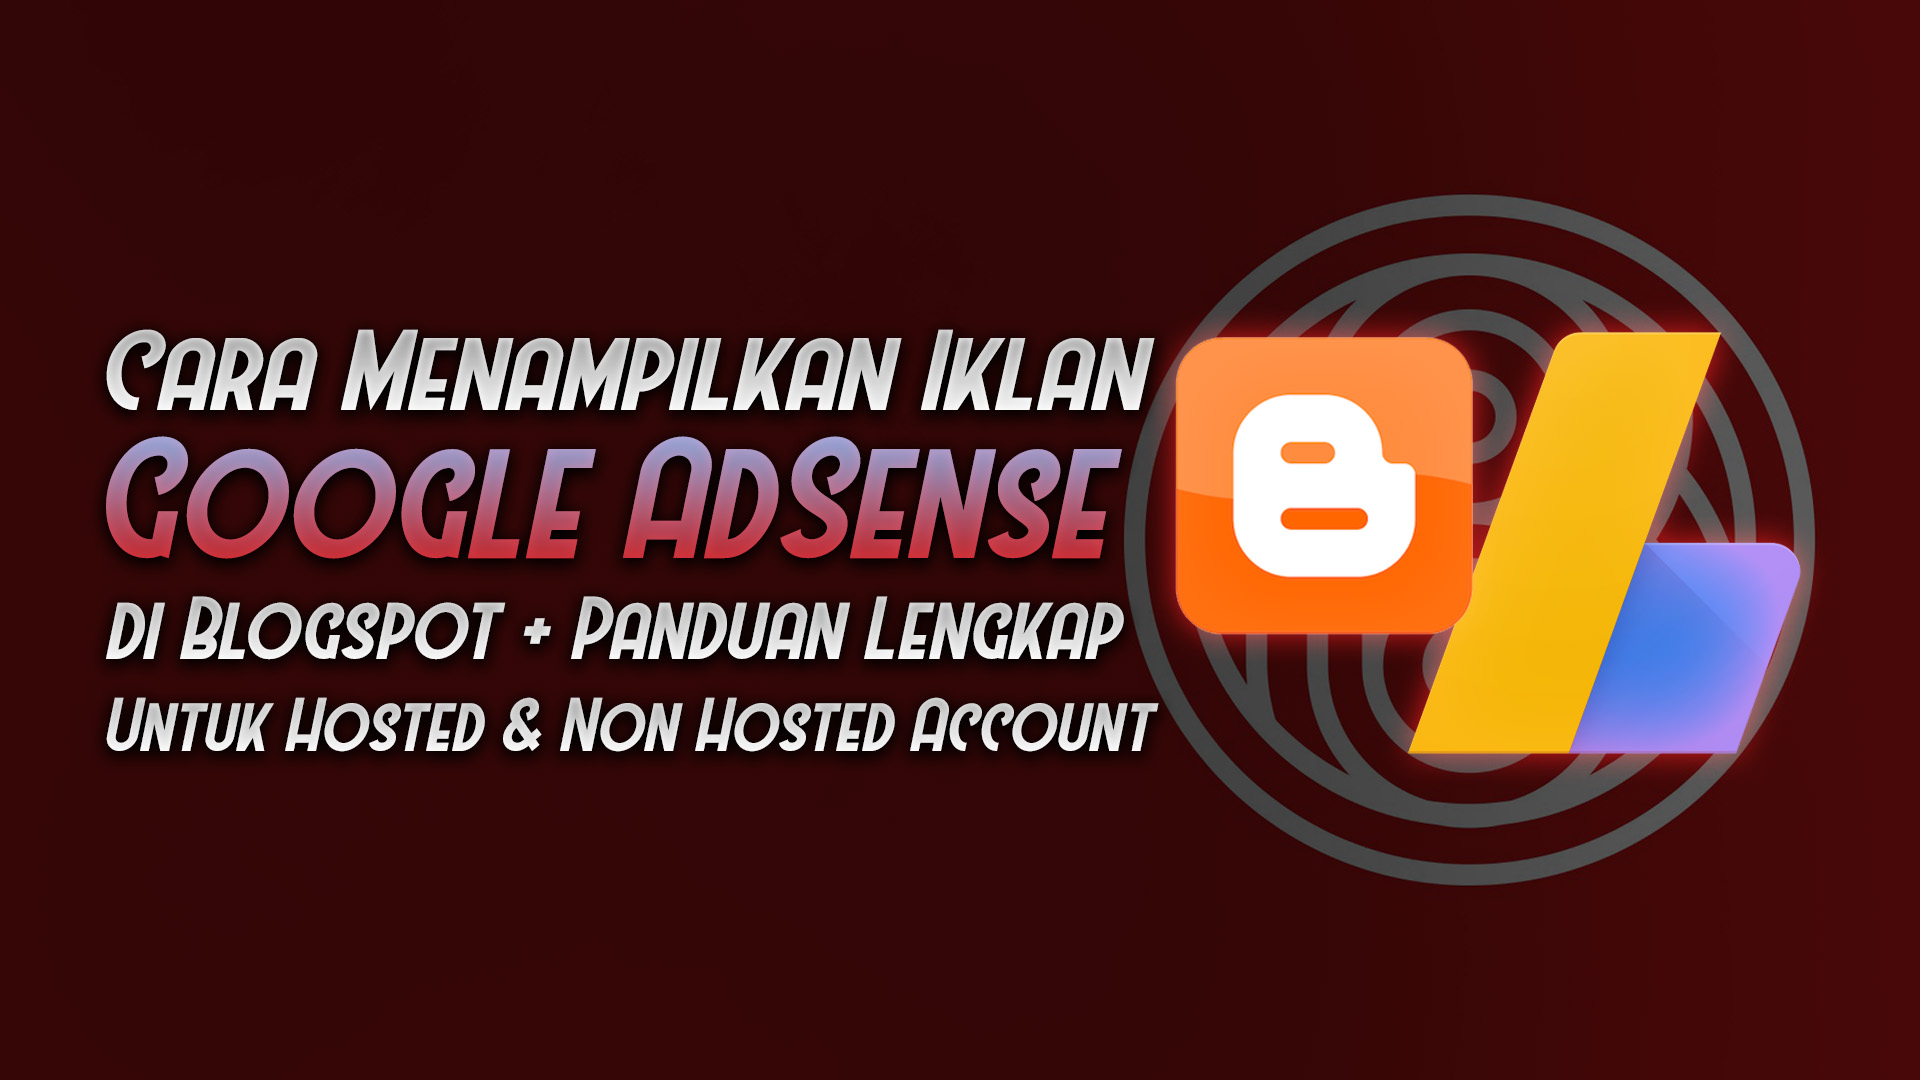 menampilkkan iklan google adsense di blogspot hosted non hosted account - rio bermano